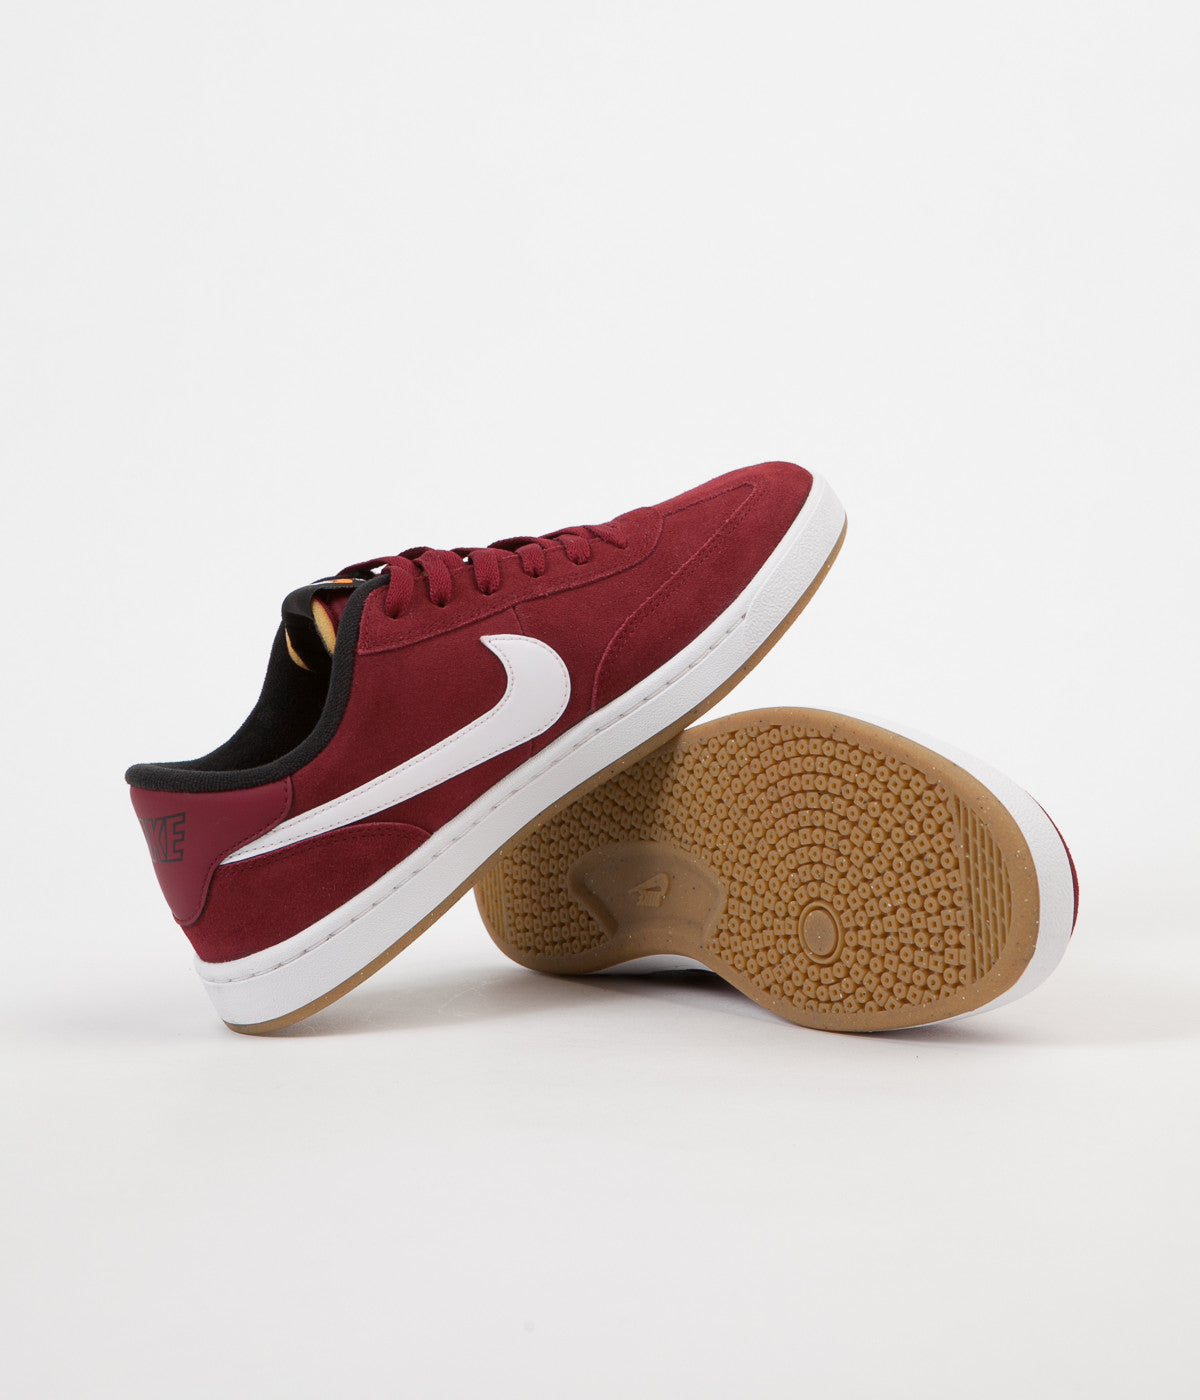 607f80ba195300 ... Nike SB FC Classic Shoes - Team Red   White - Black - Vivid Orange ...